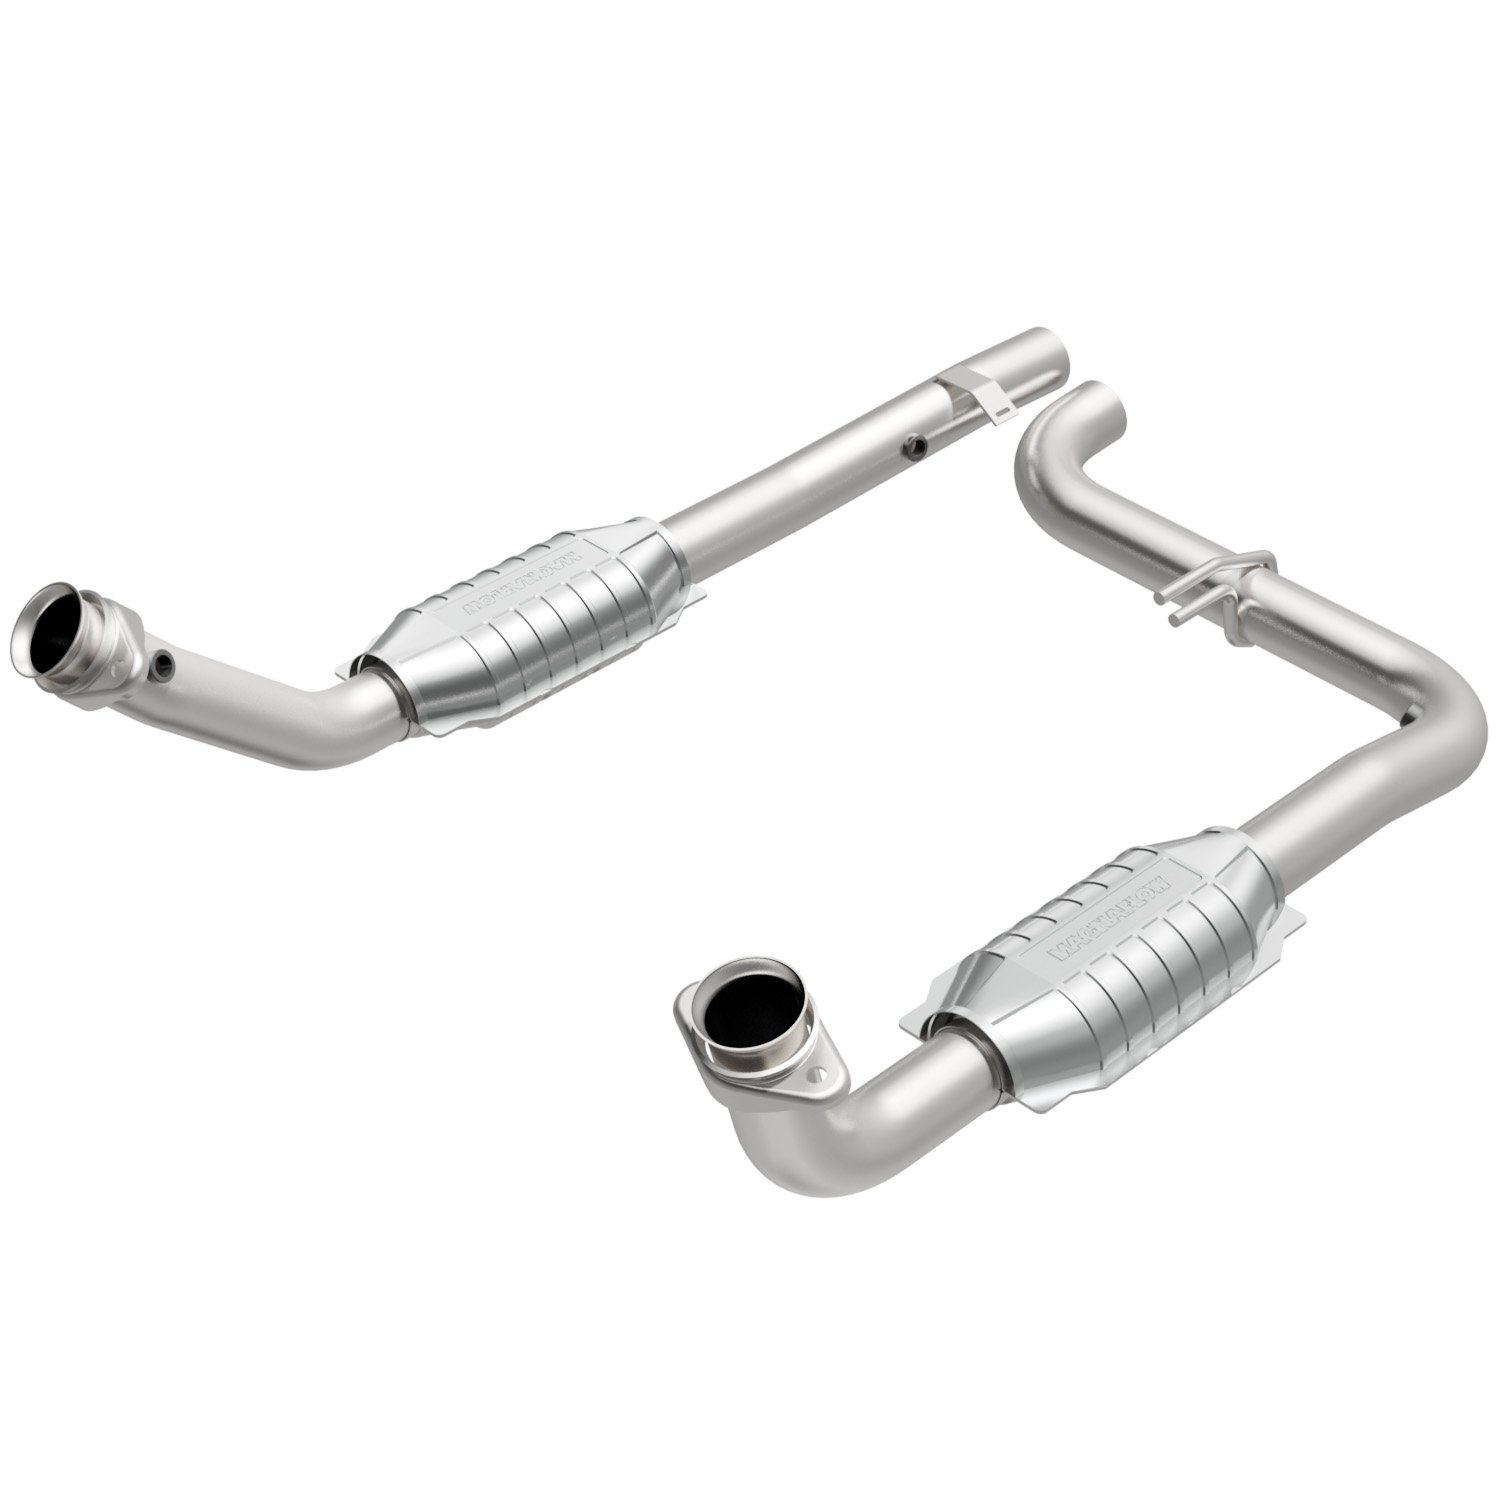 Magnaflow 15478 Direct-Fit Catalytic Converter